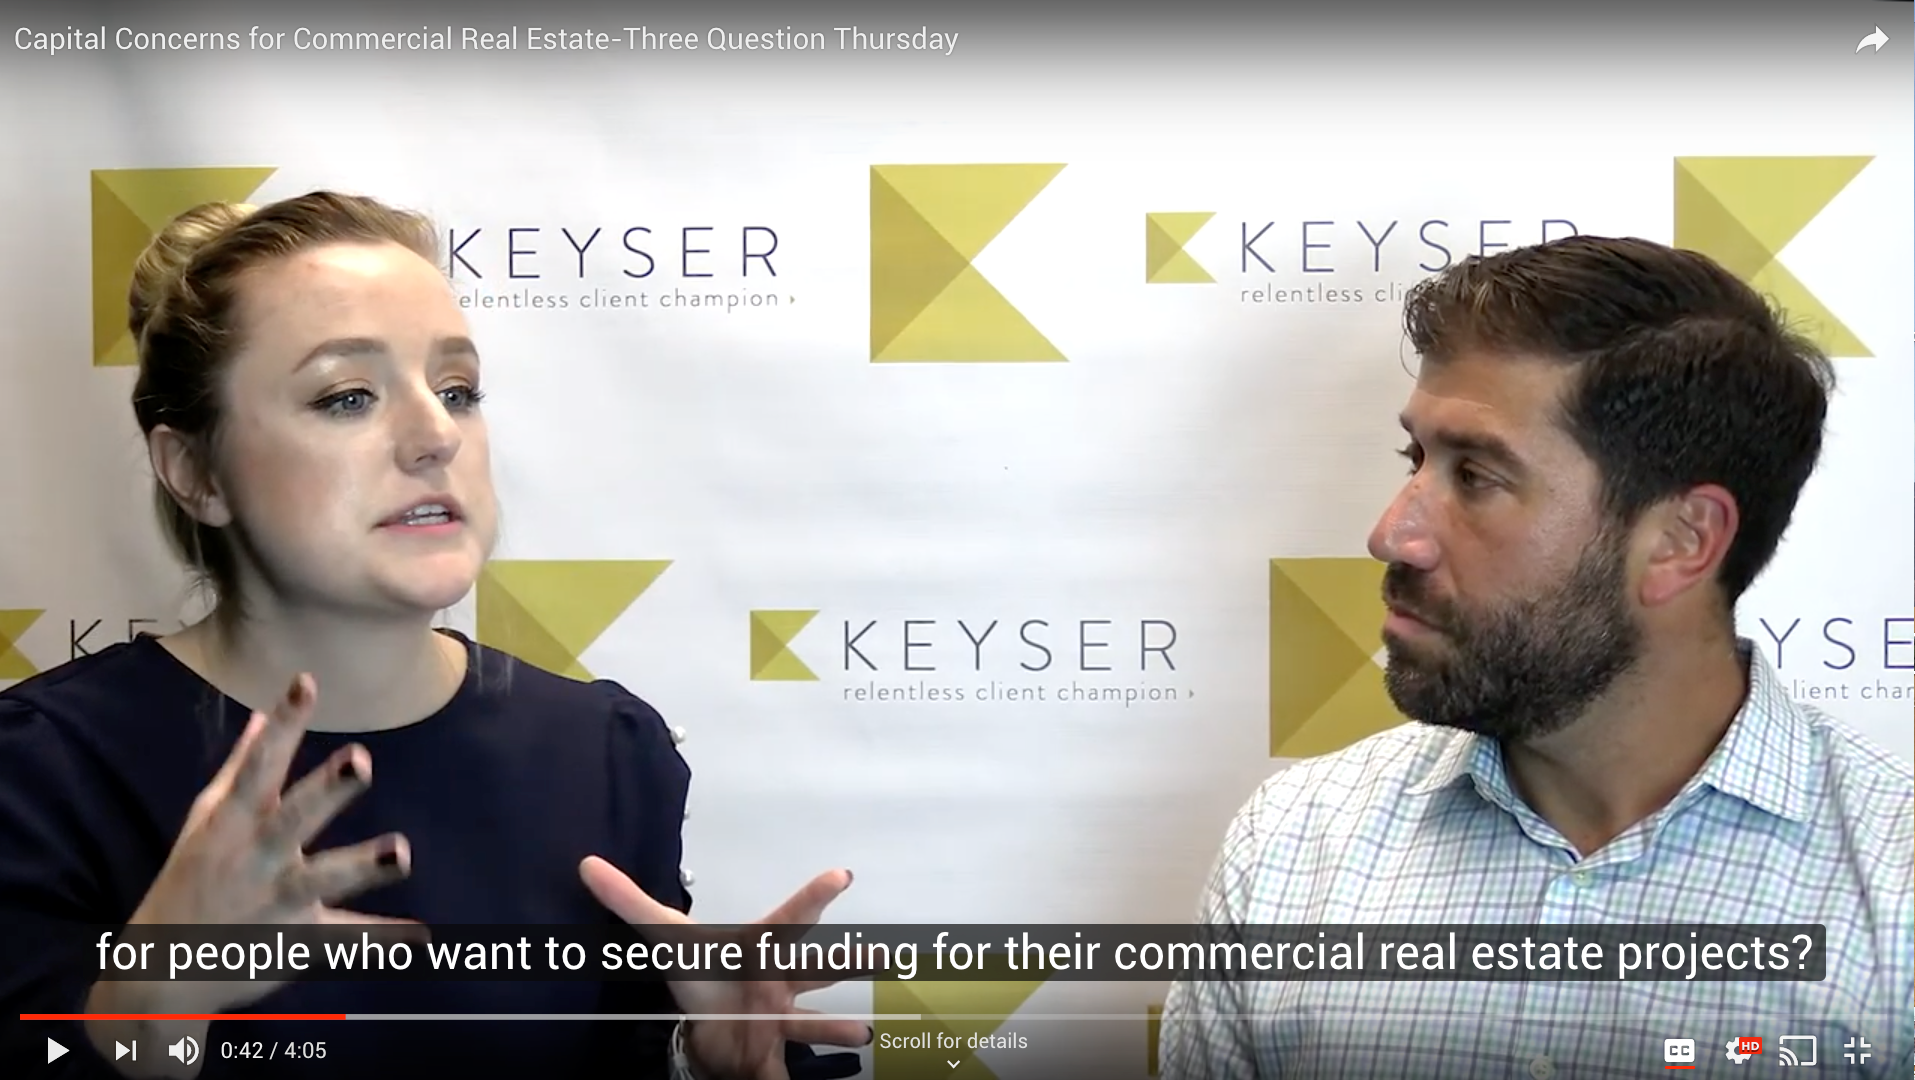 capital concerns in commercial real estate interview